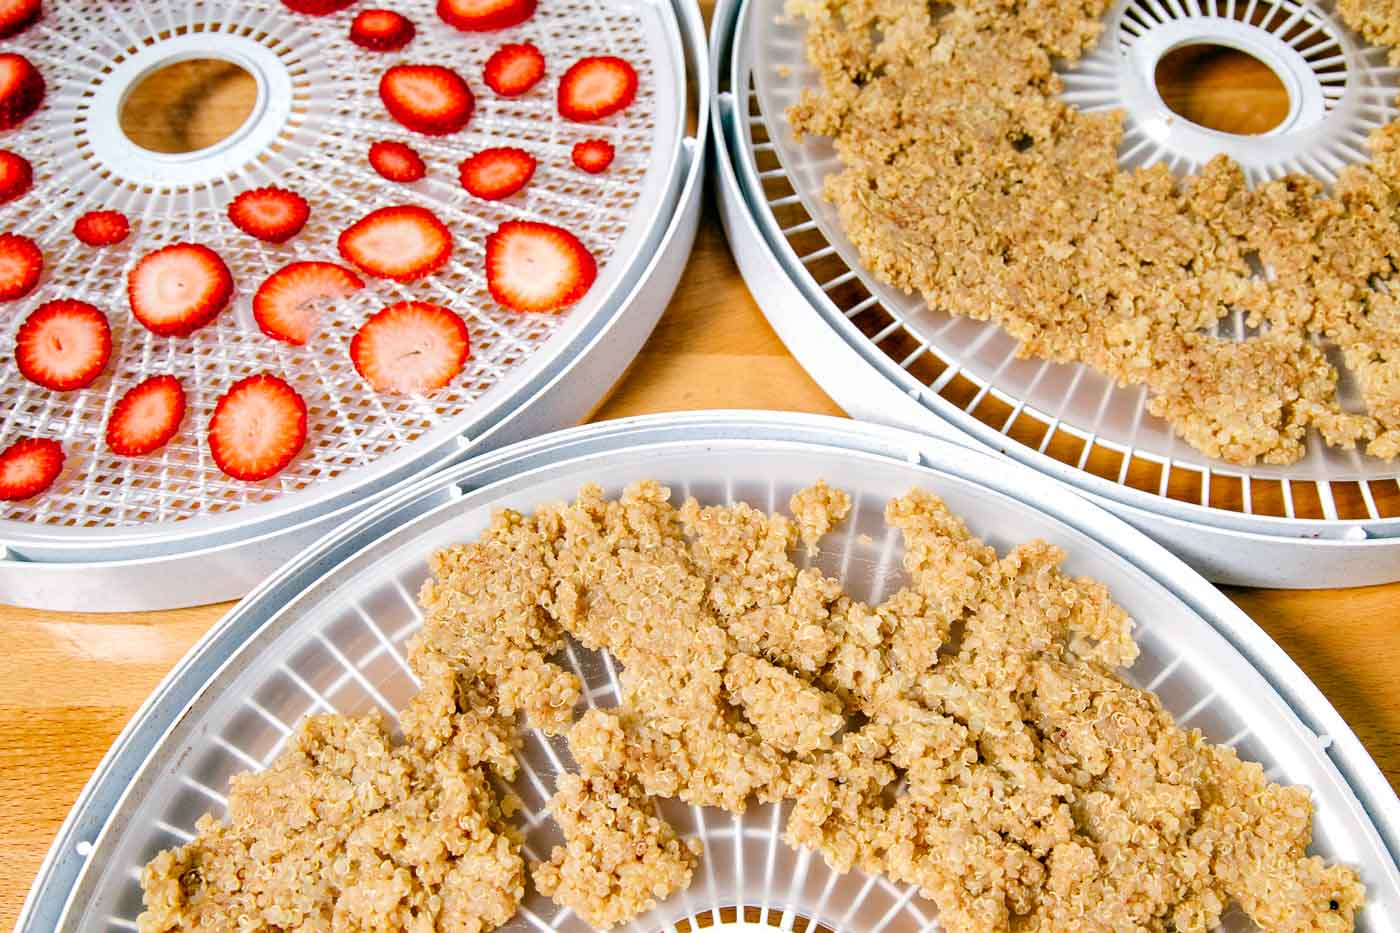 Cooked quinoa and sliced strawberries on dehydrator trays